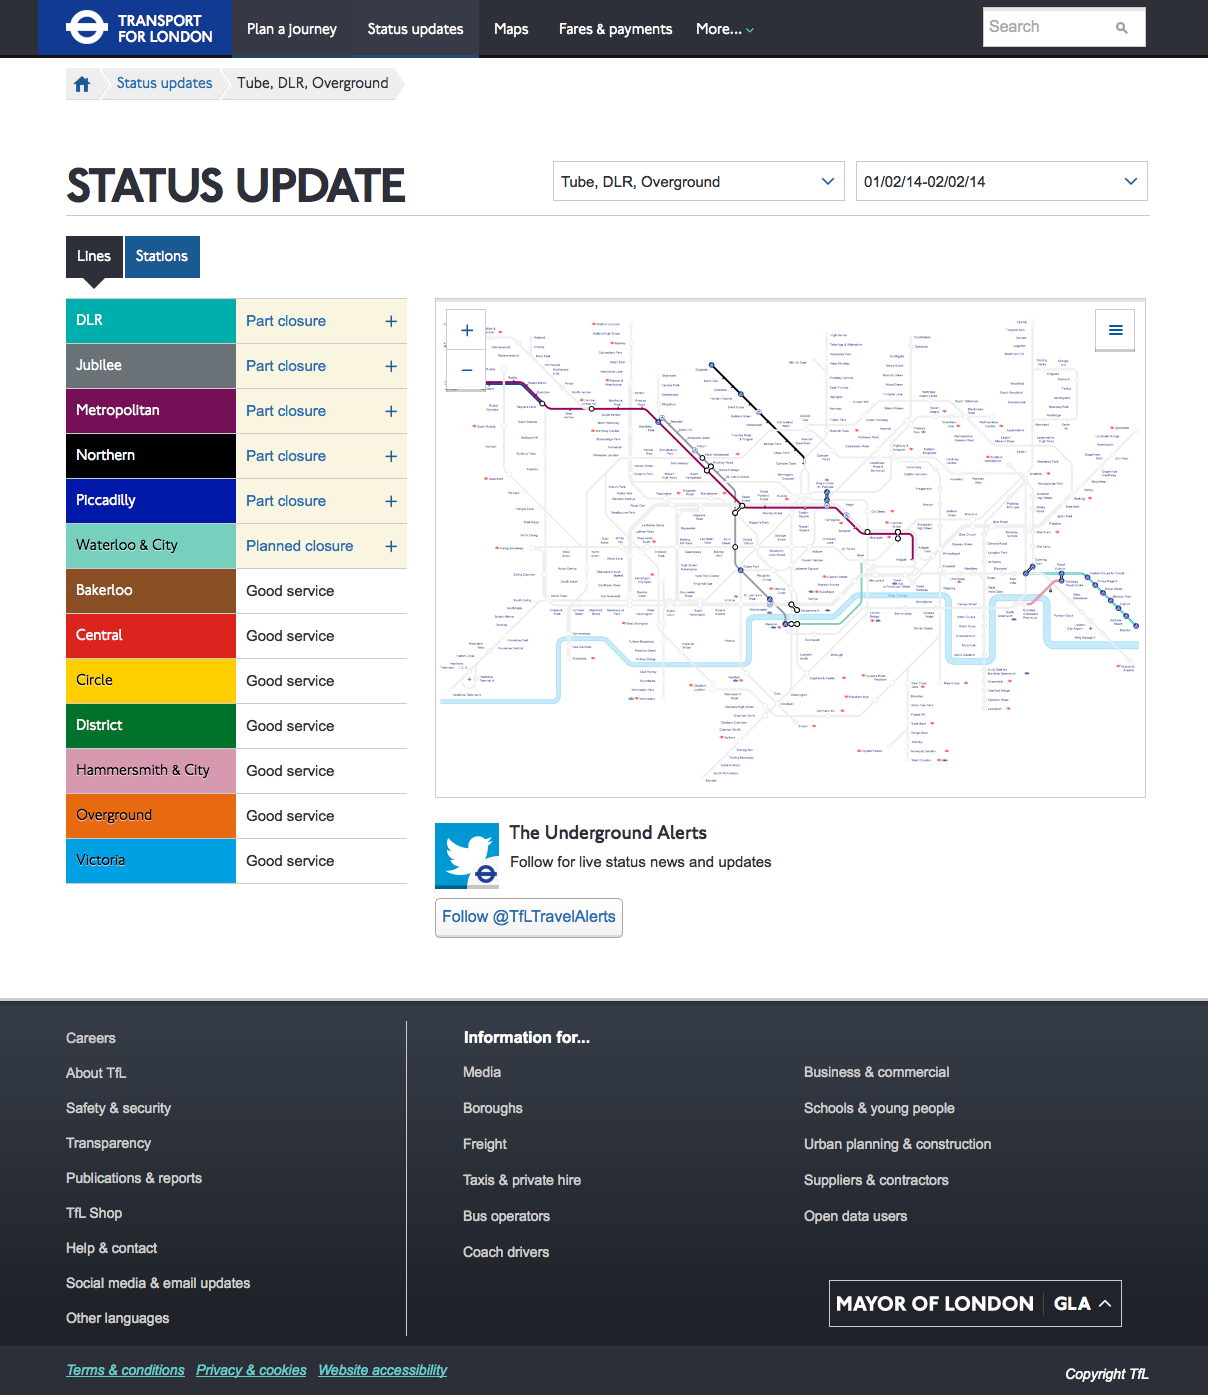 Tube status update and interactive map